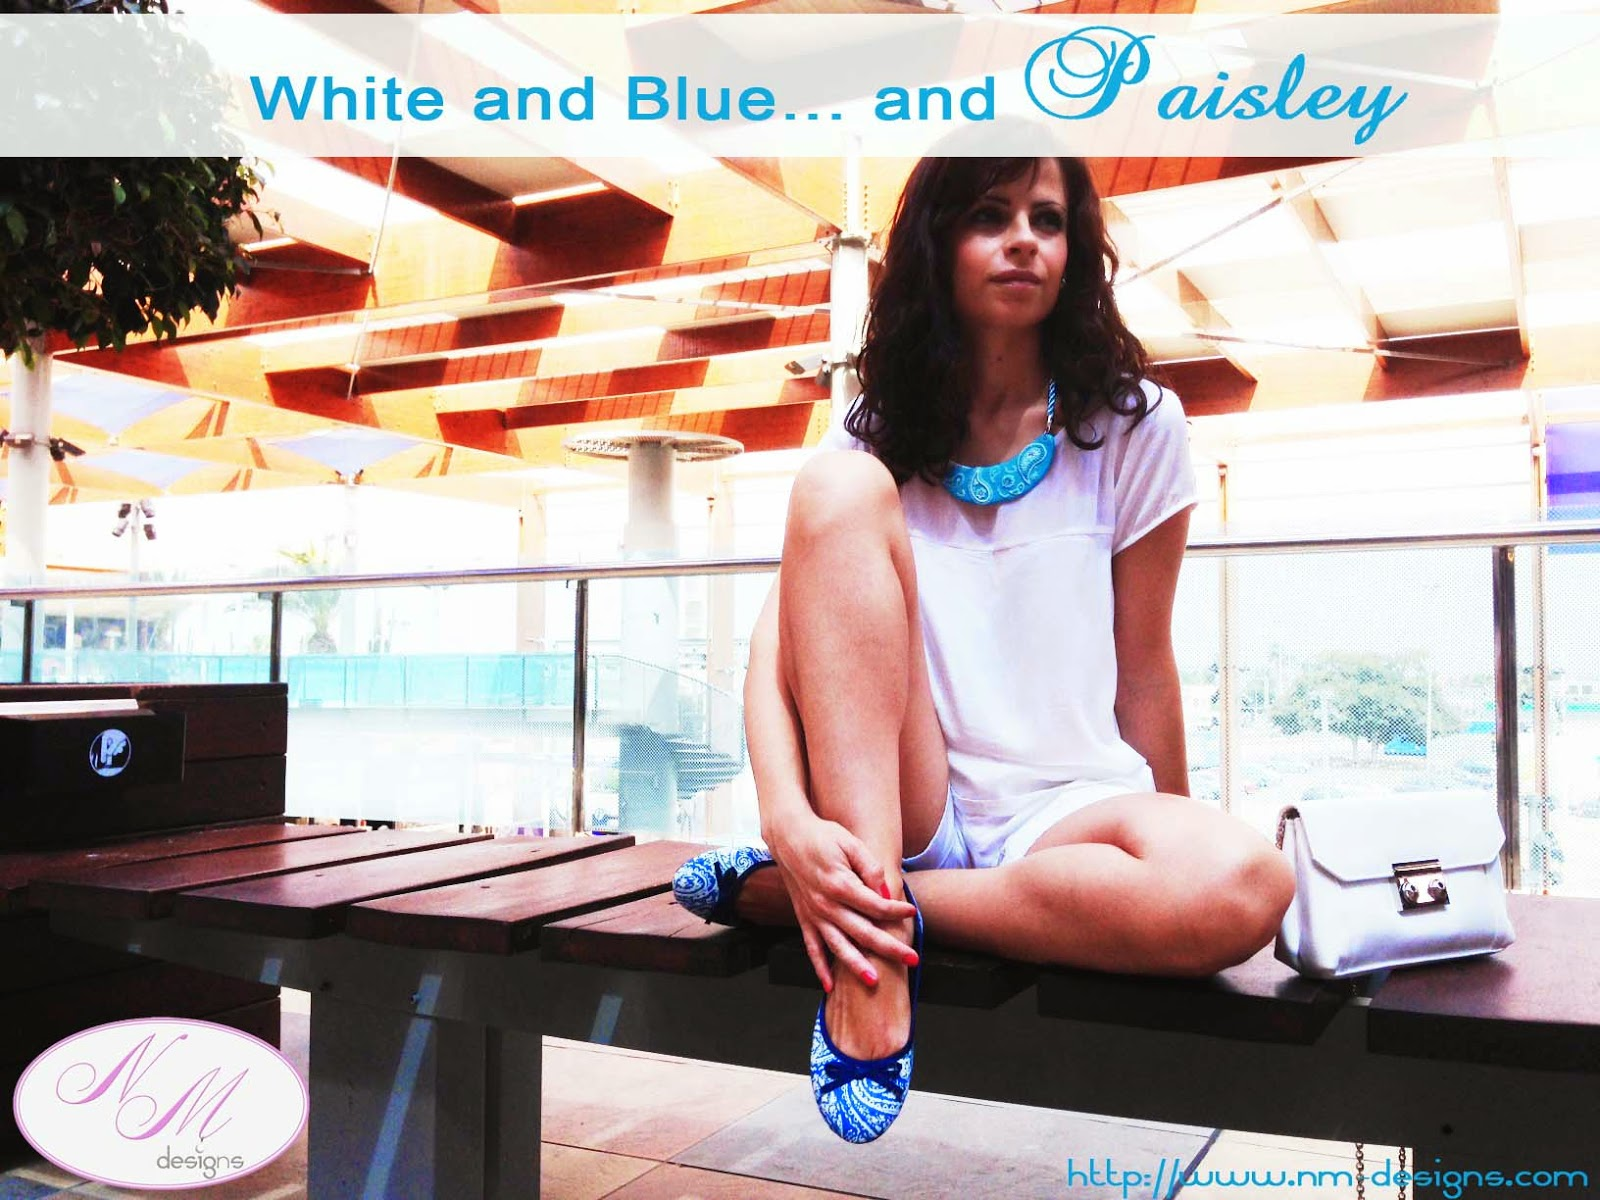 White and Blue... and Paisley